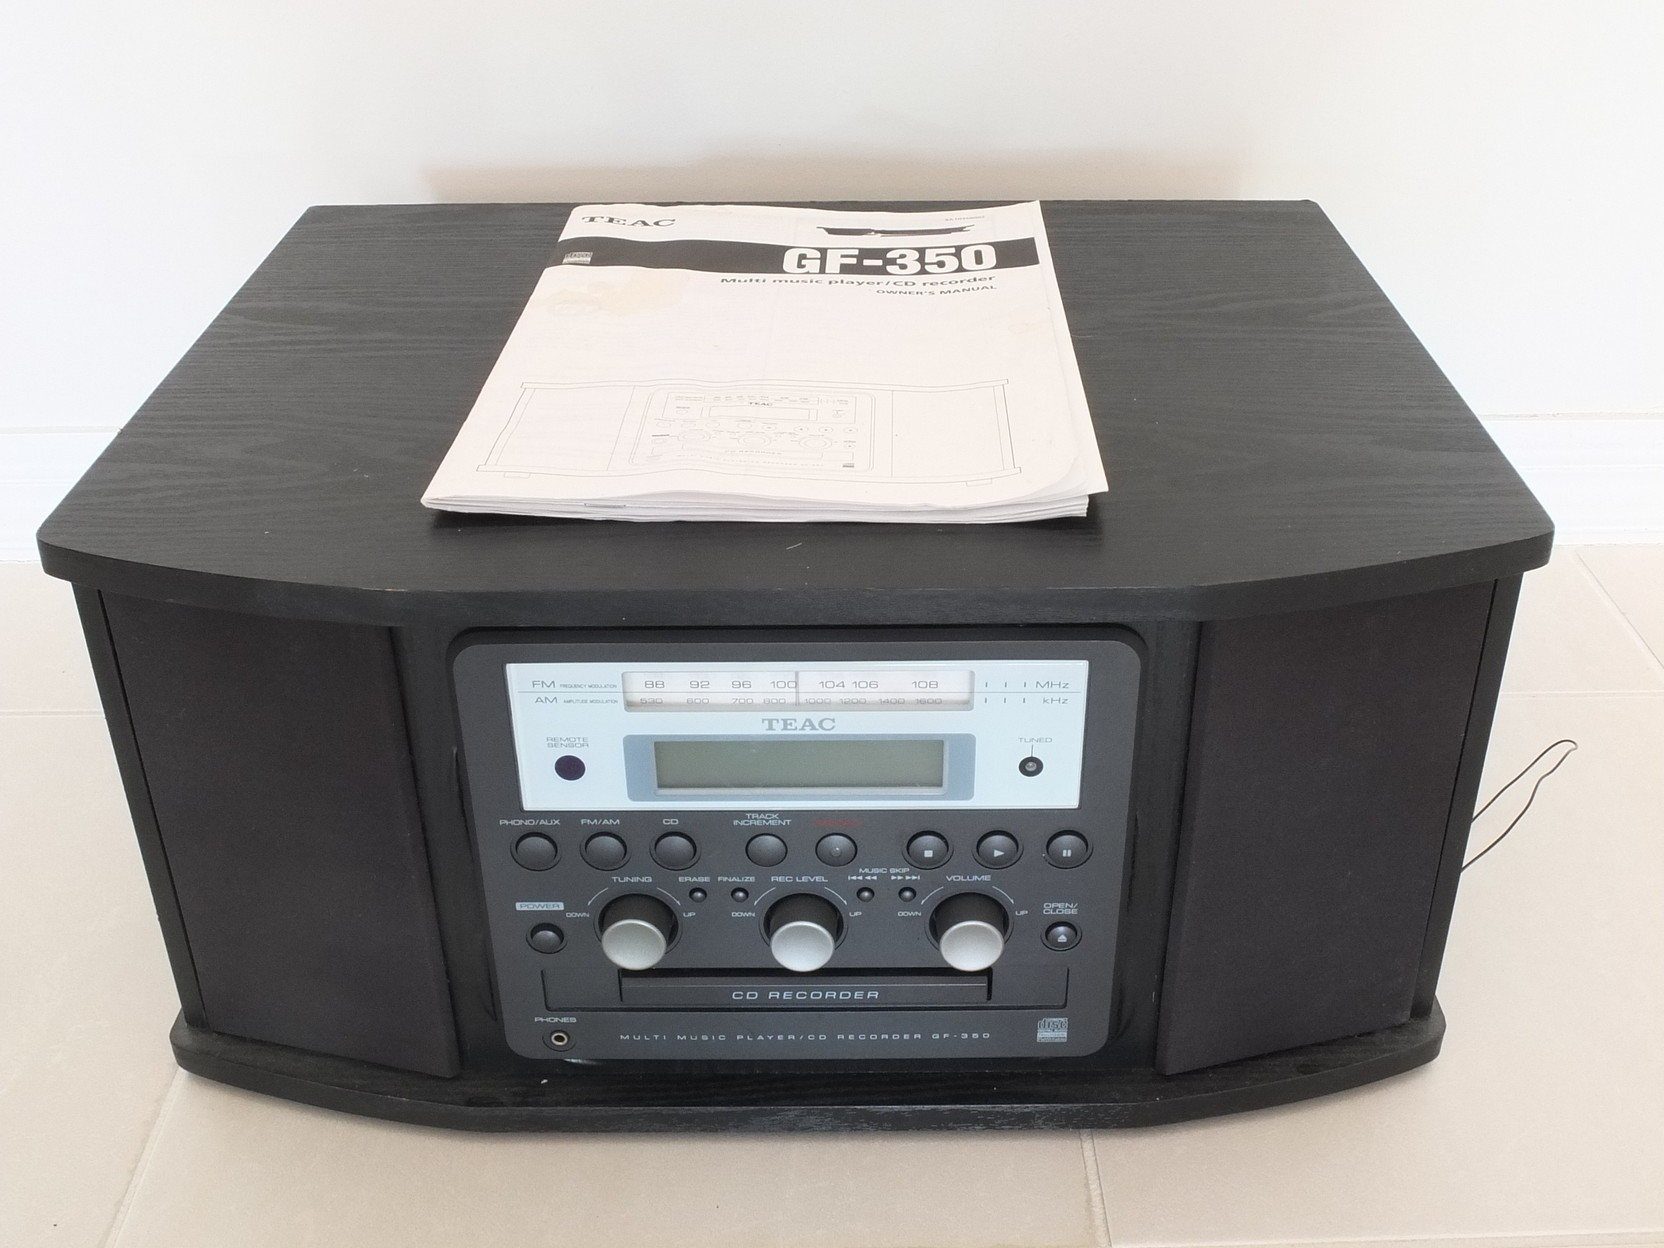 'TEAC GF-350 Multi Music Player / CD Recorder'